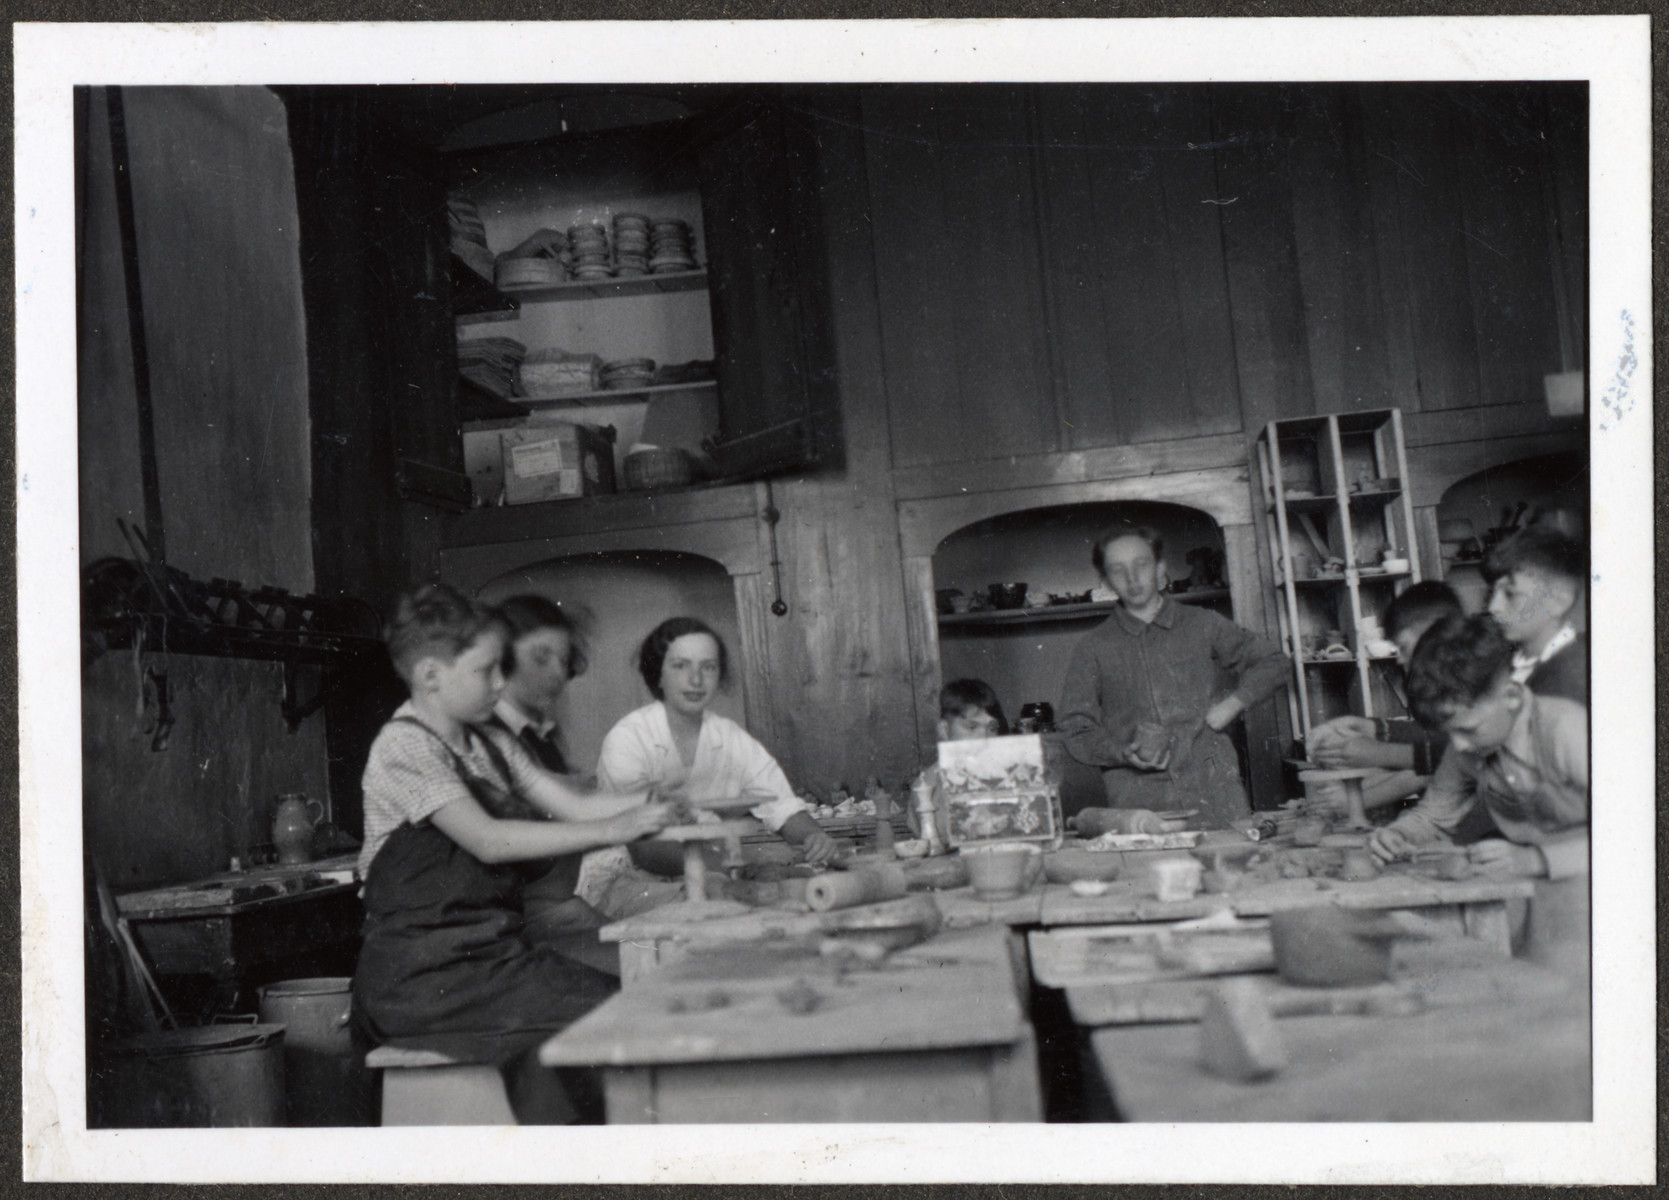 Children, many of them German Jewish refugees, make pottery in an art class at a Quaker boarding school in Eerde.